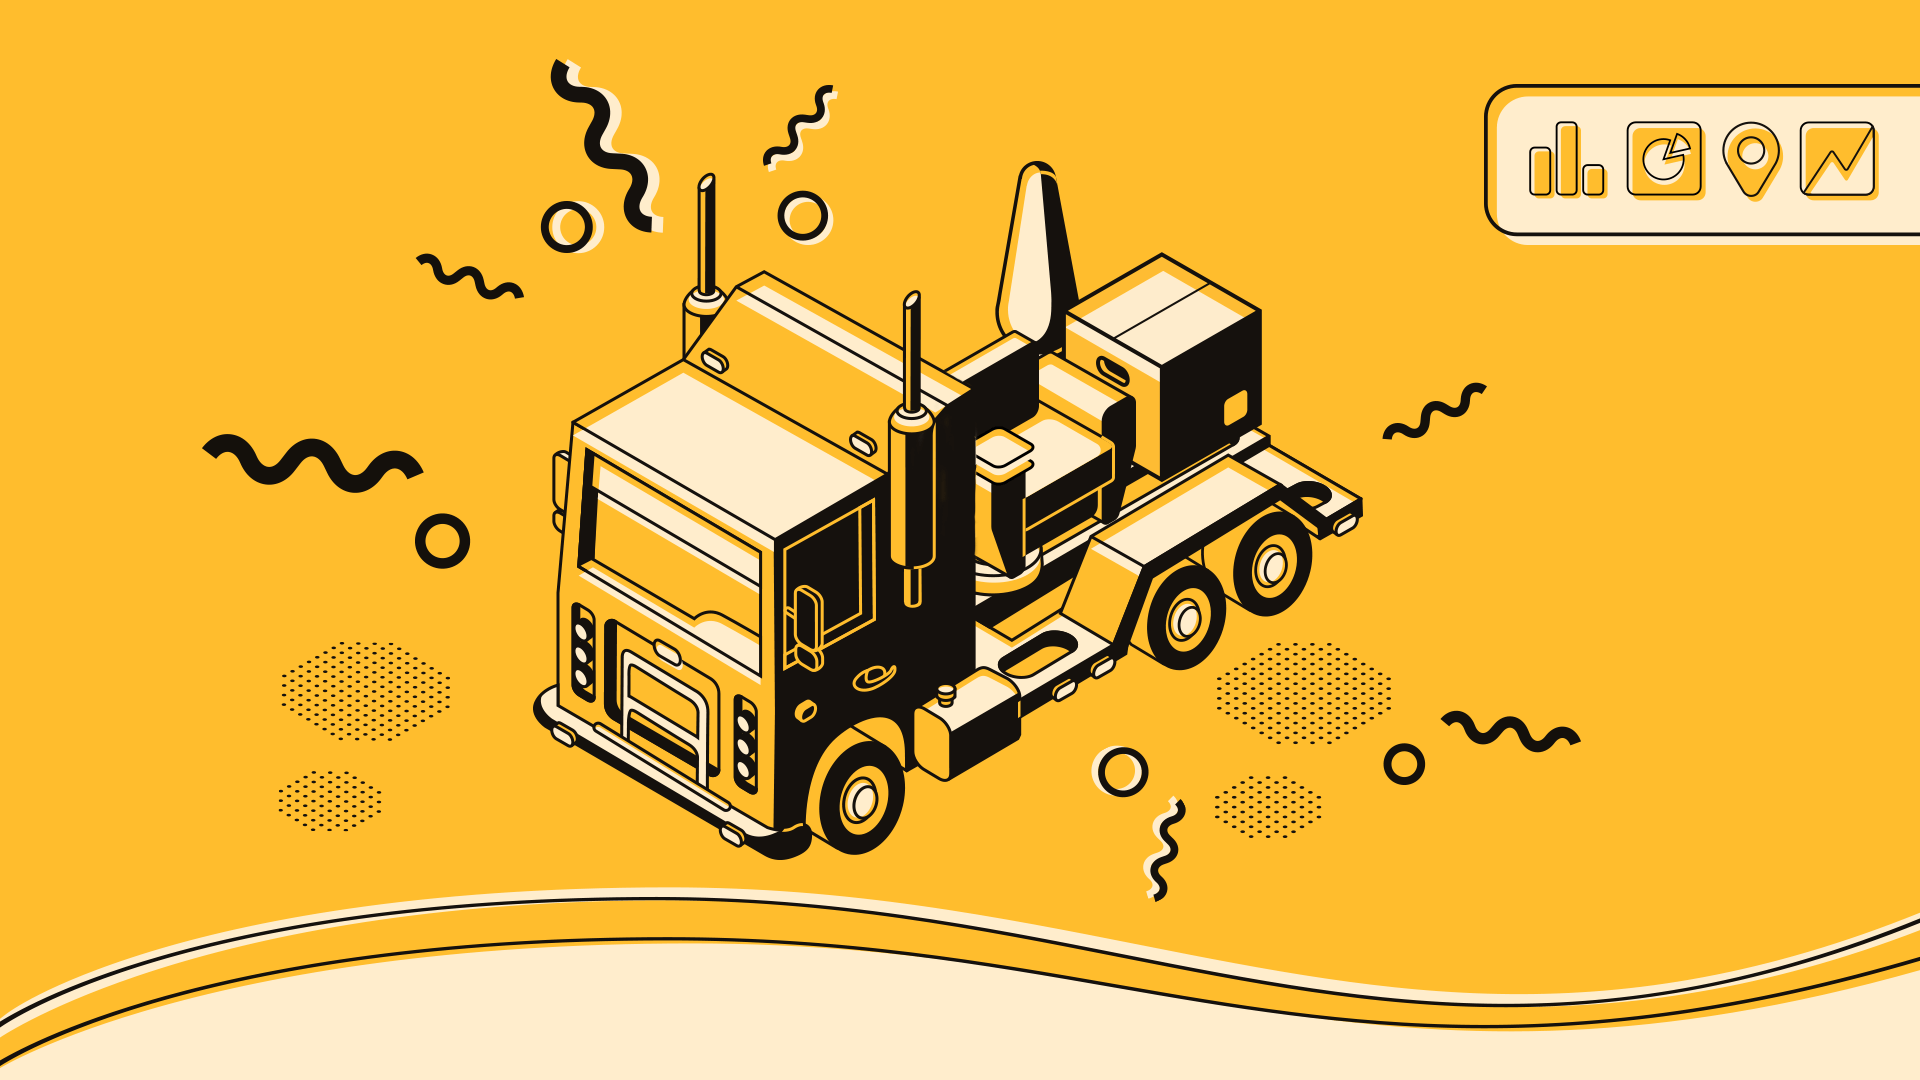 Get your things delivered on time with on-demand moving service app.